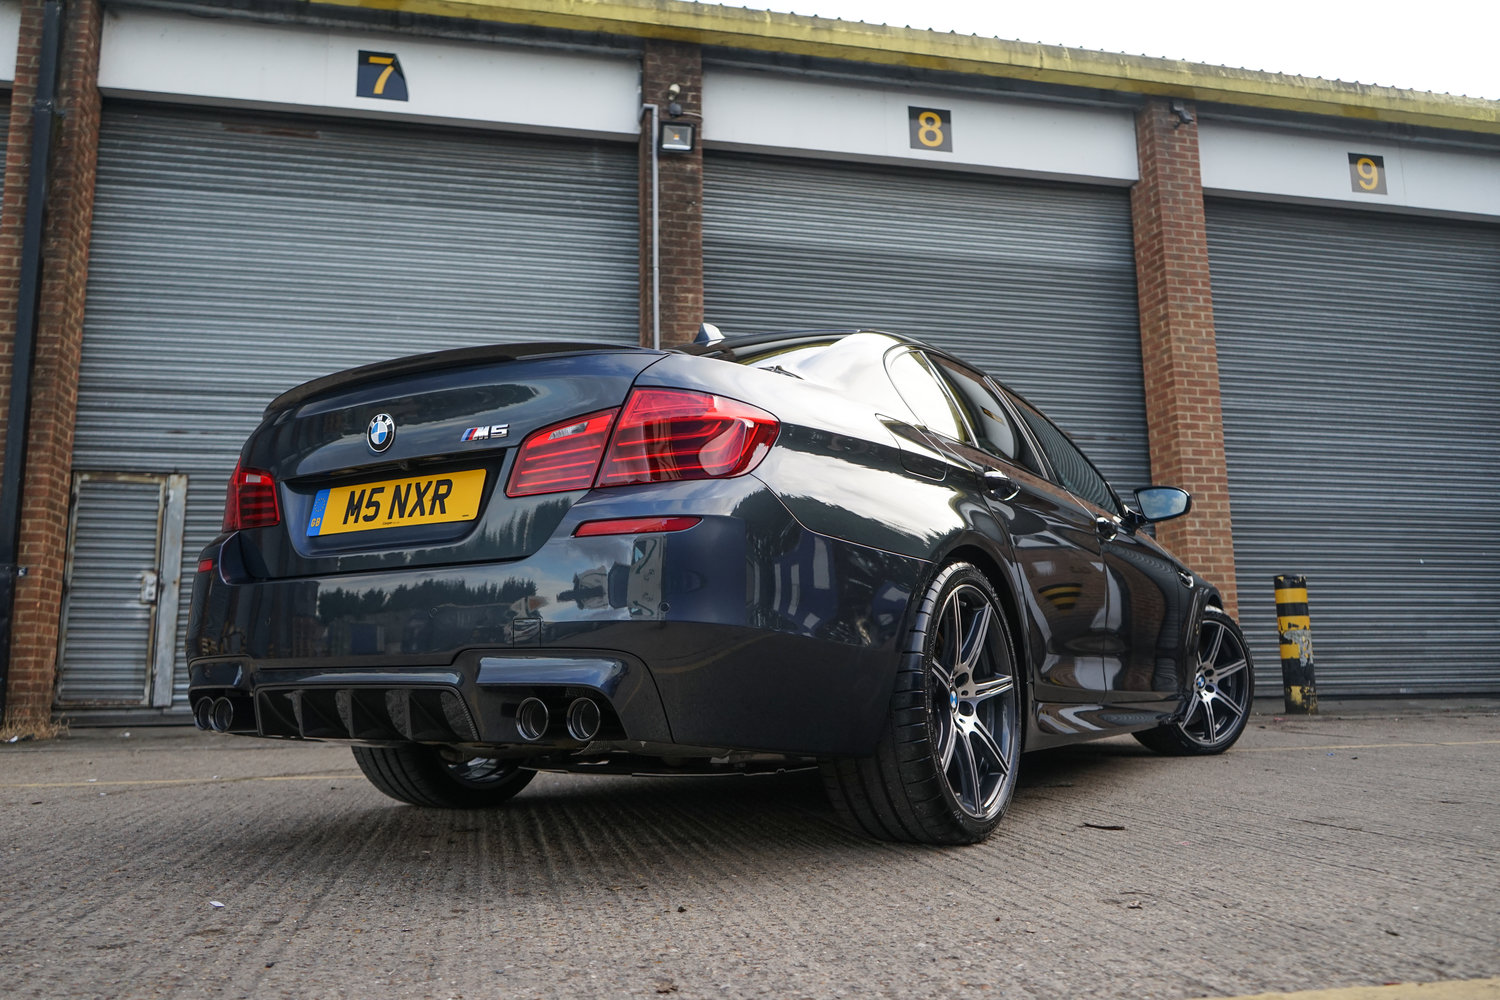 The Finished Article, This Brand New M5 recent received my New Car Protection Package, For an insight into what it received click  here  to read the article.